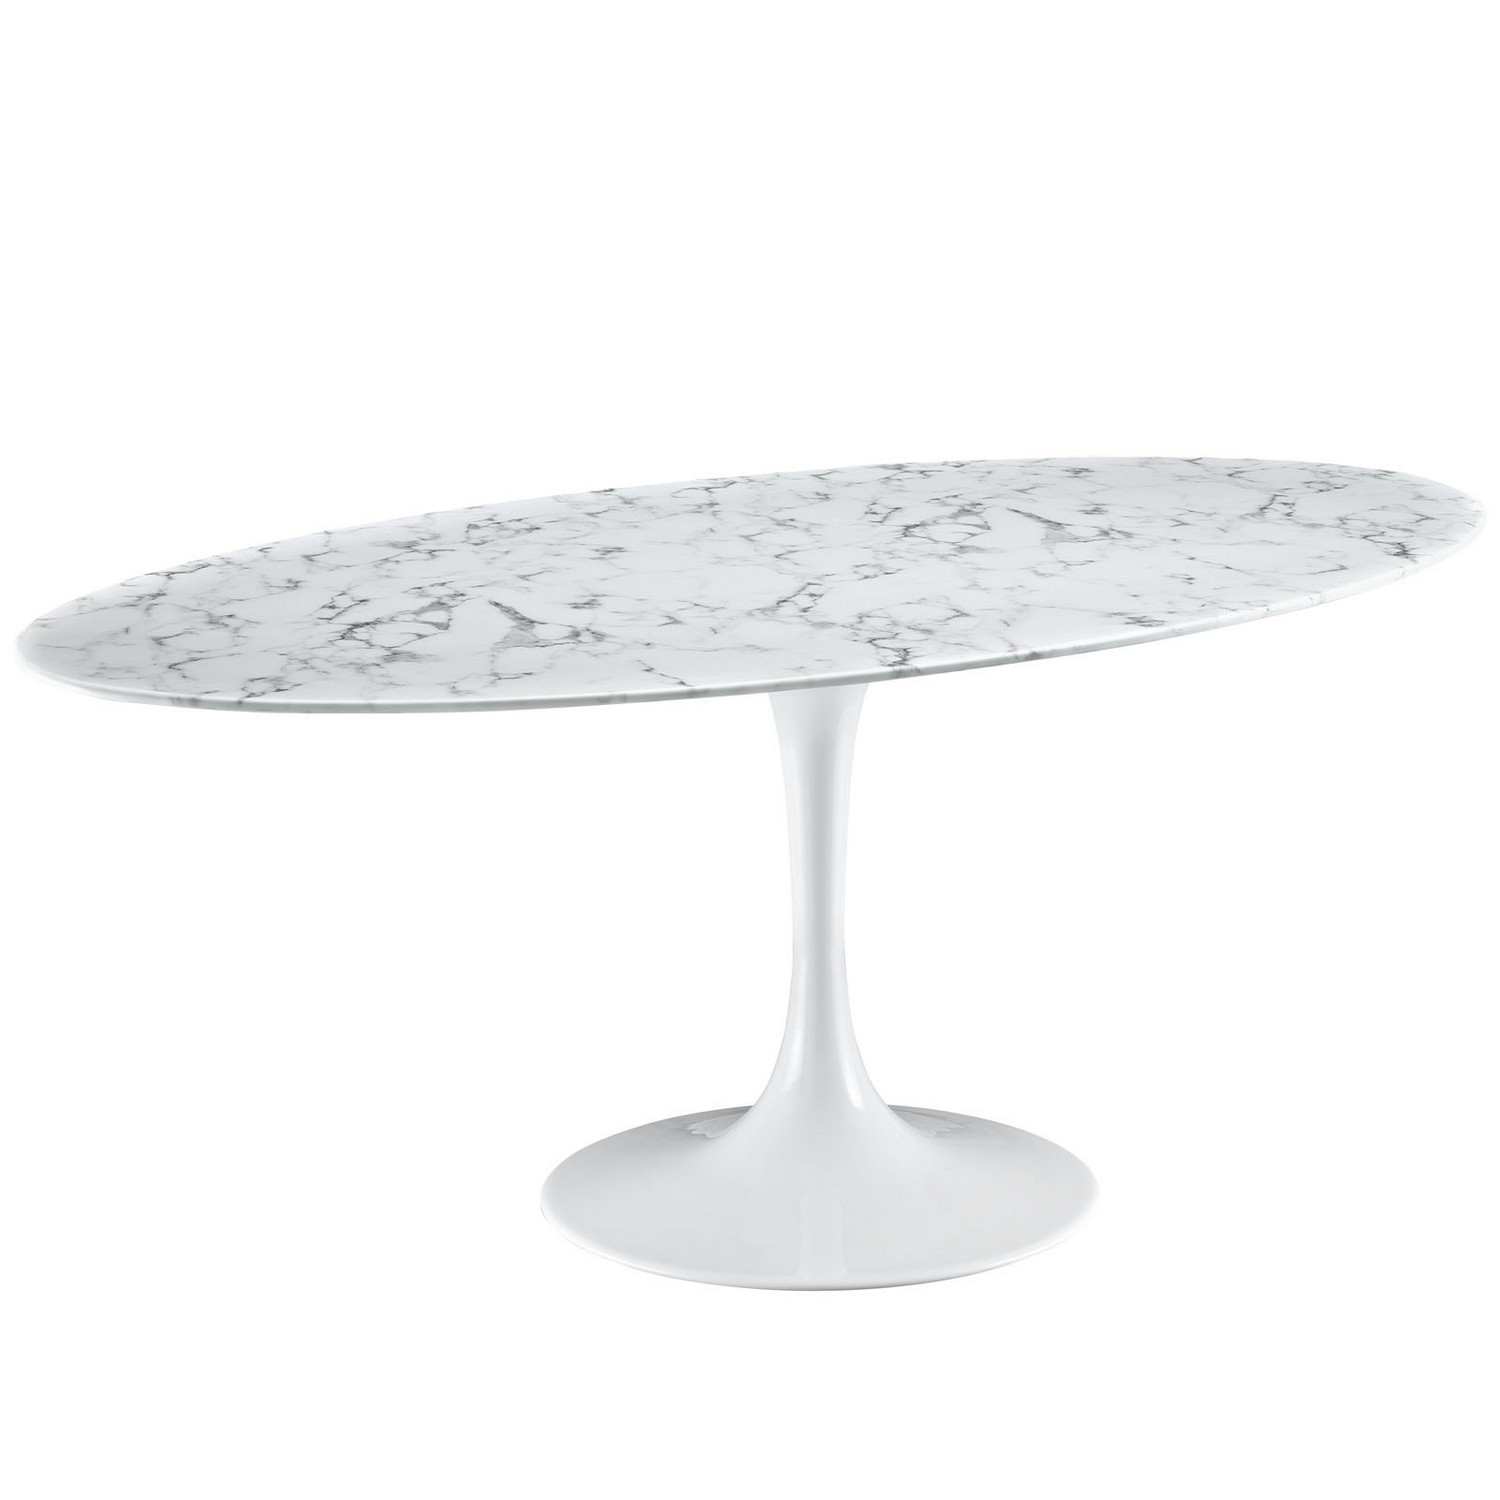 Modway Lippa 78 Artificial Marble Dining Table - White